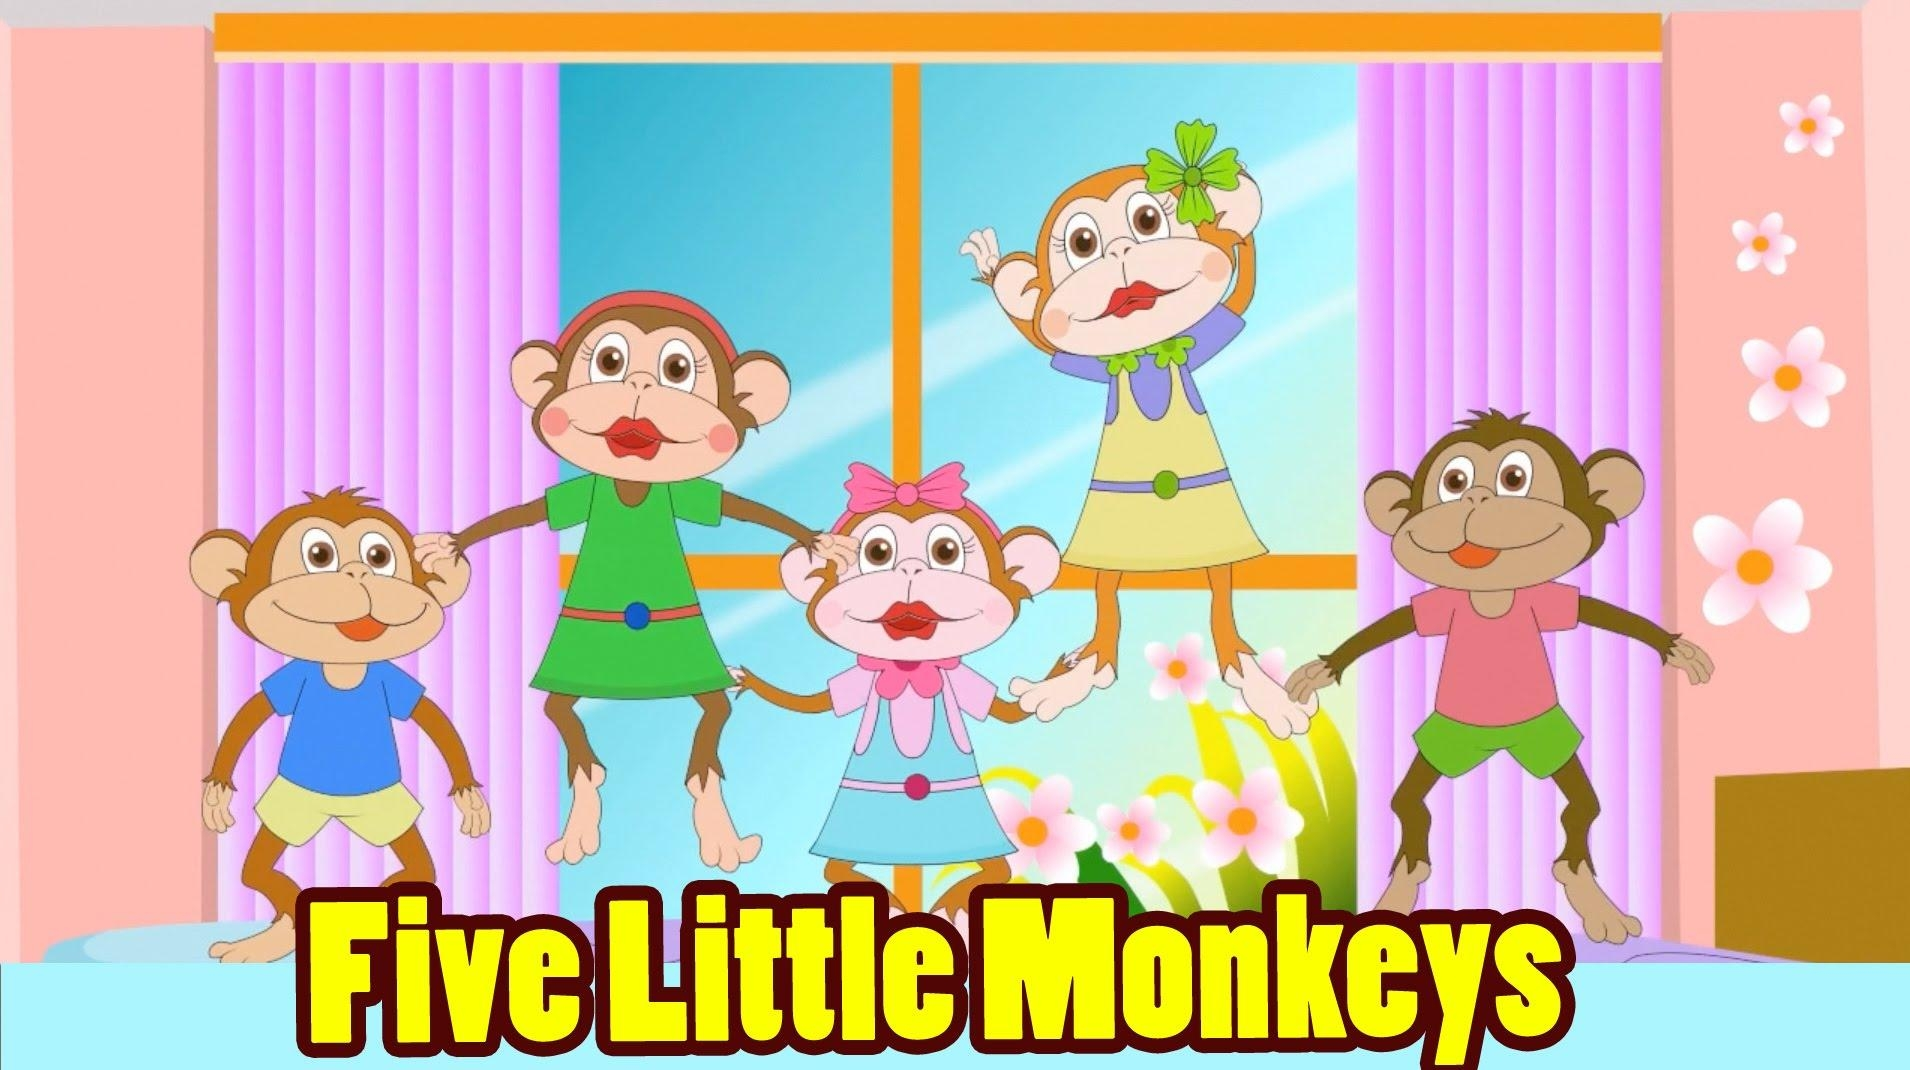 Five Little Monkeys Jumping On The Bed With Lyrics – Kids Songs Intended For No More Monkeys Jumping On The Bed Wall Art (View 16 of 20)